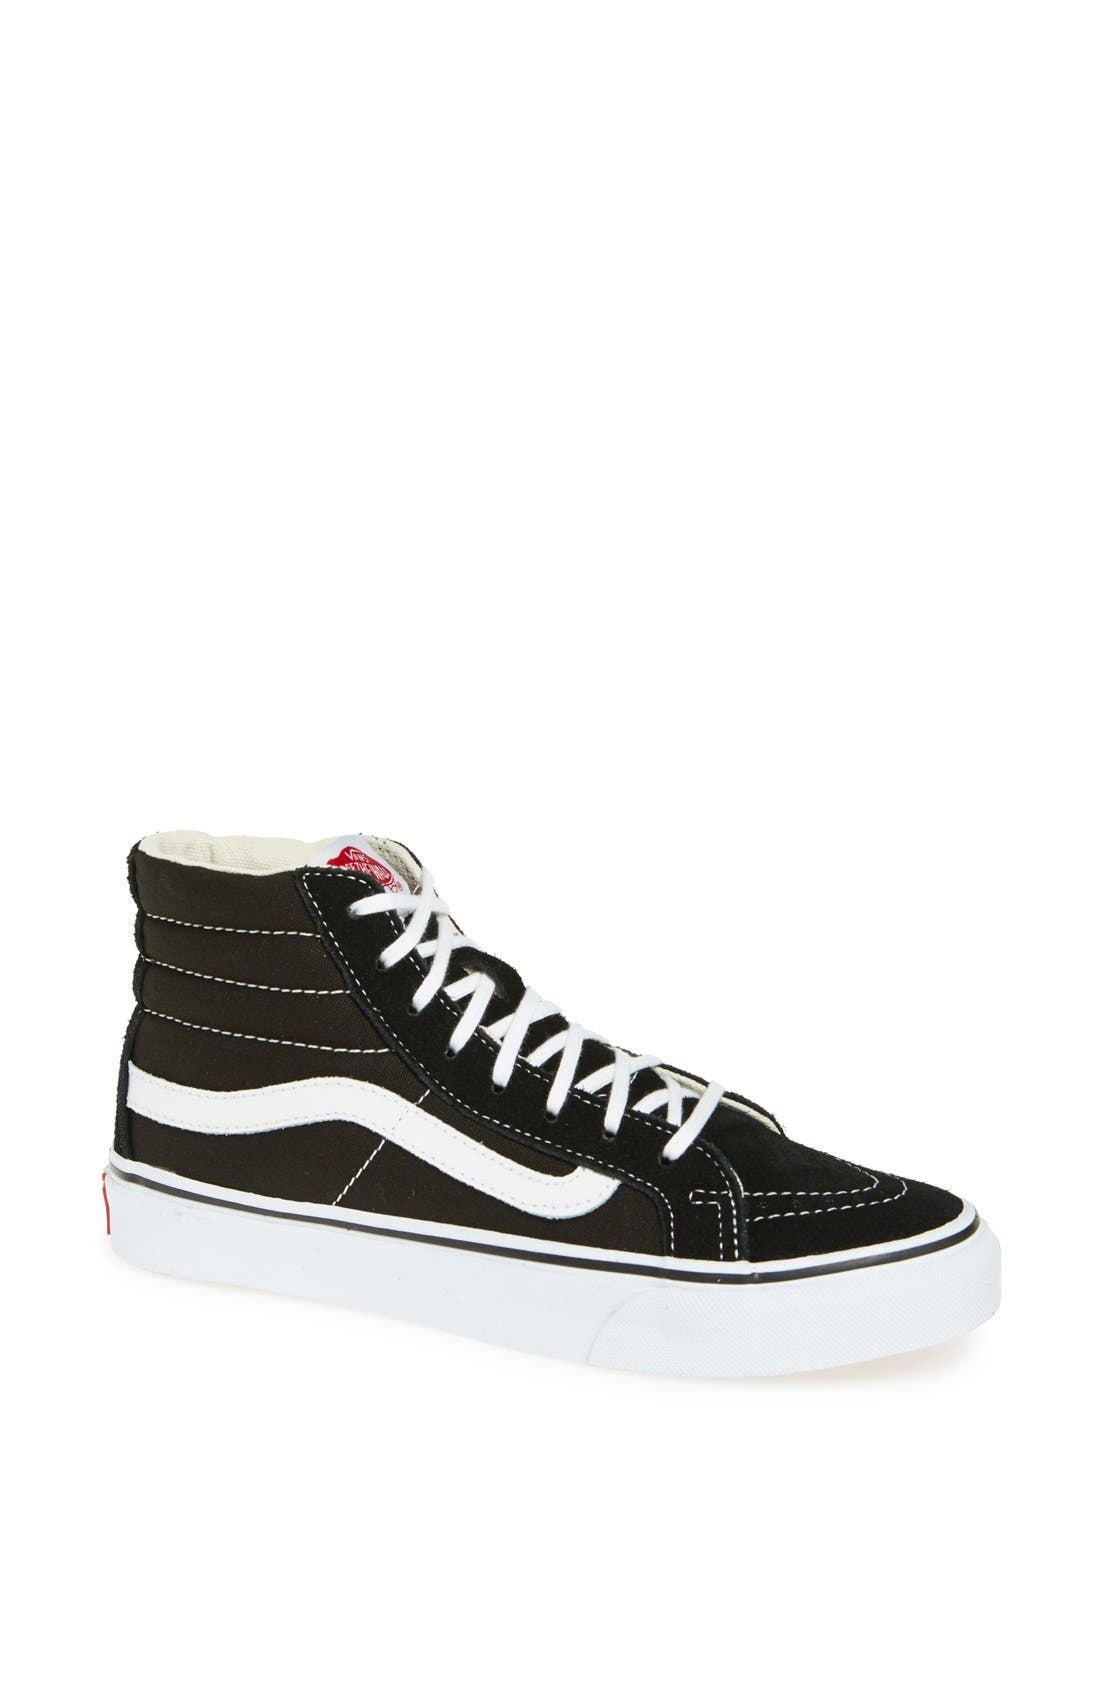 Alternate Image 1 Selected - Vans Sk8-Hi Slim High Top Sneaker (Women)